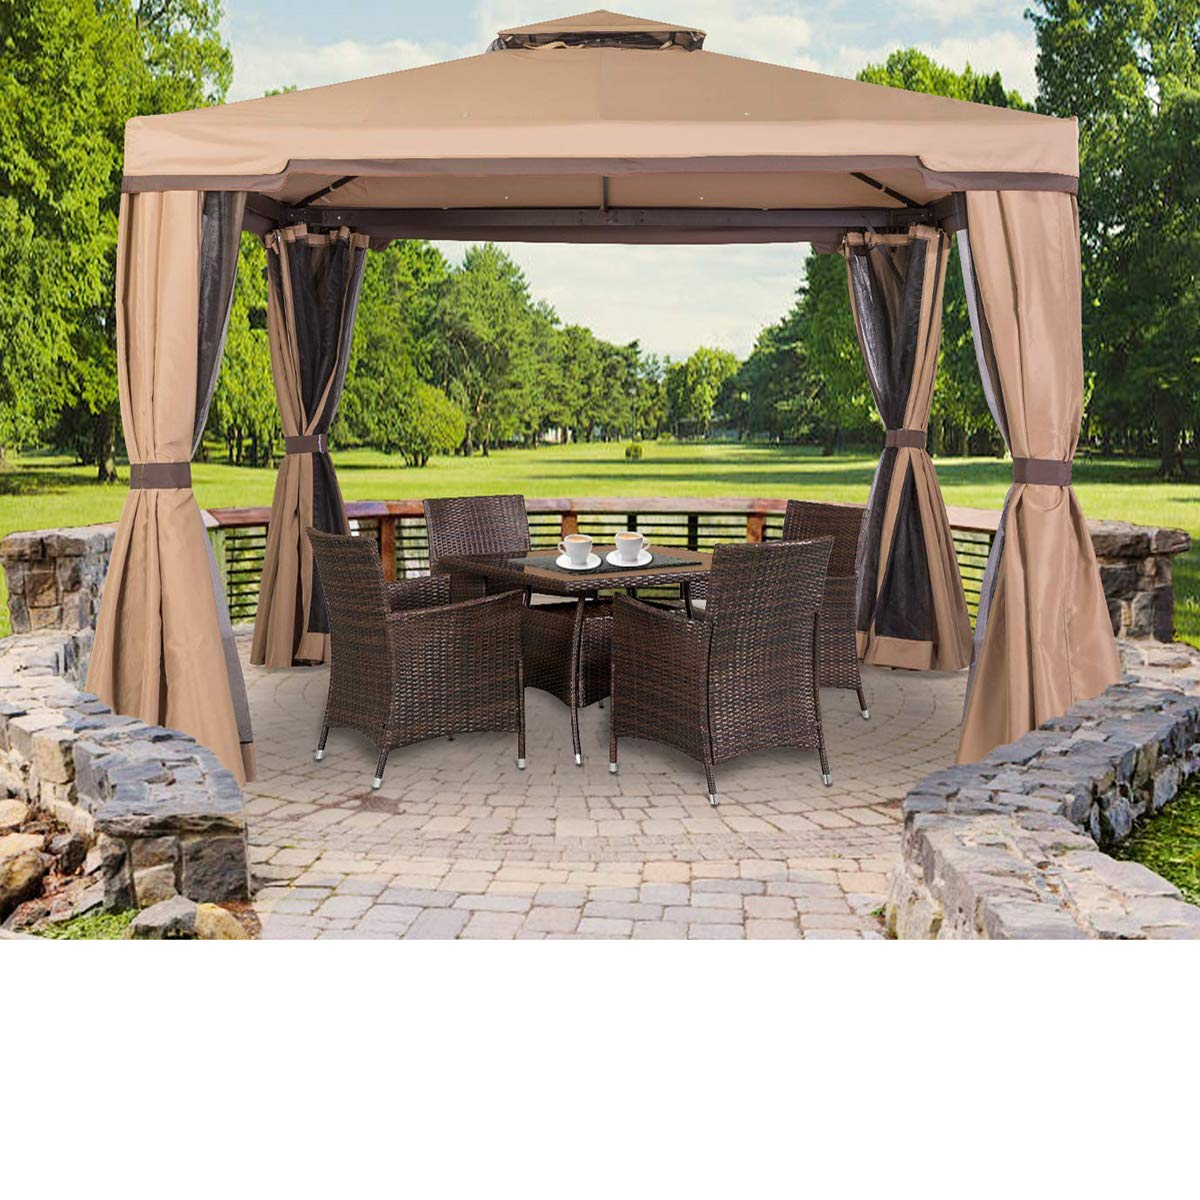 suncrown outdoor patio garden gazebo 10 x 10 ft with vented soft canopy double square tops and mosquito netting beige